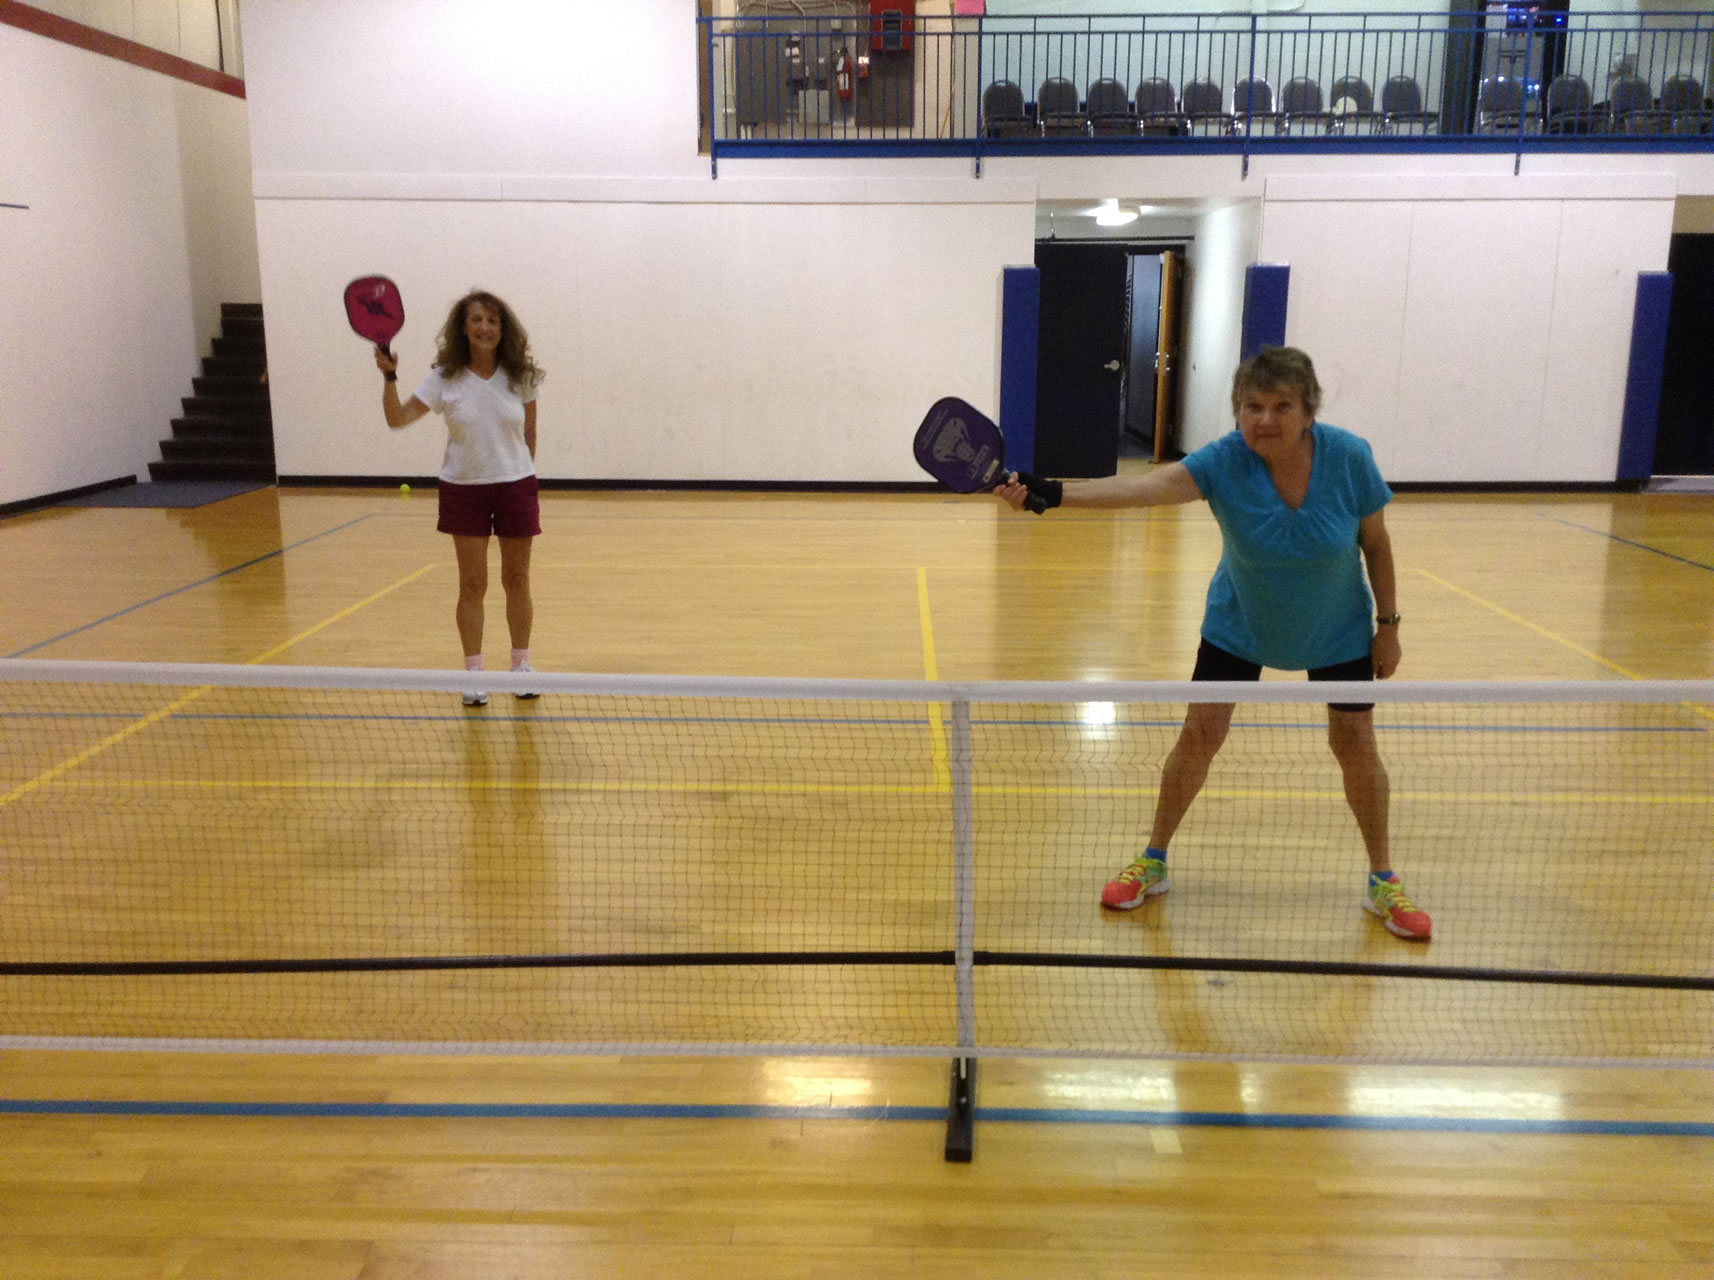 madison-turners-pickleball-two-women-awaiting-a-serve